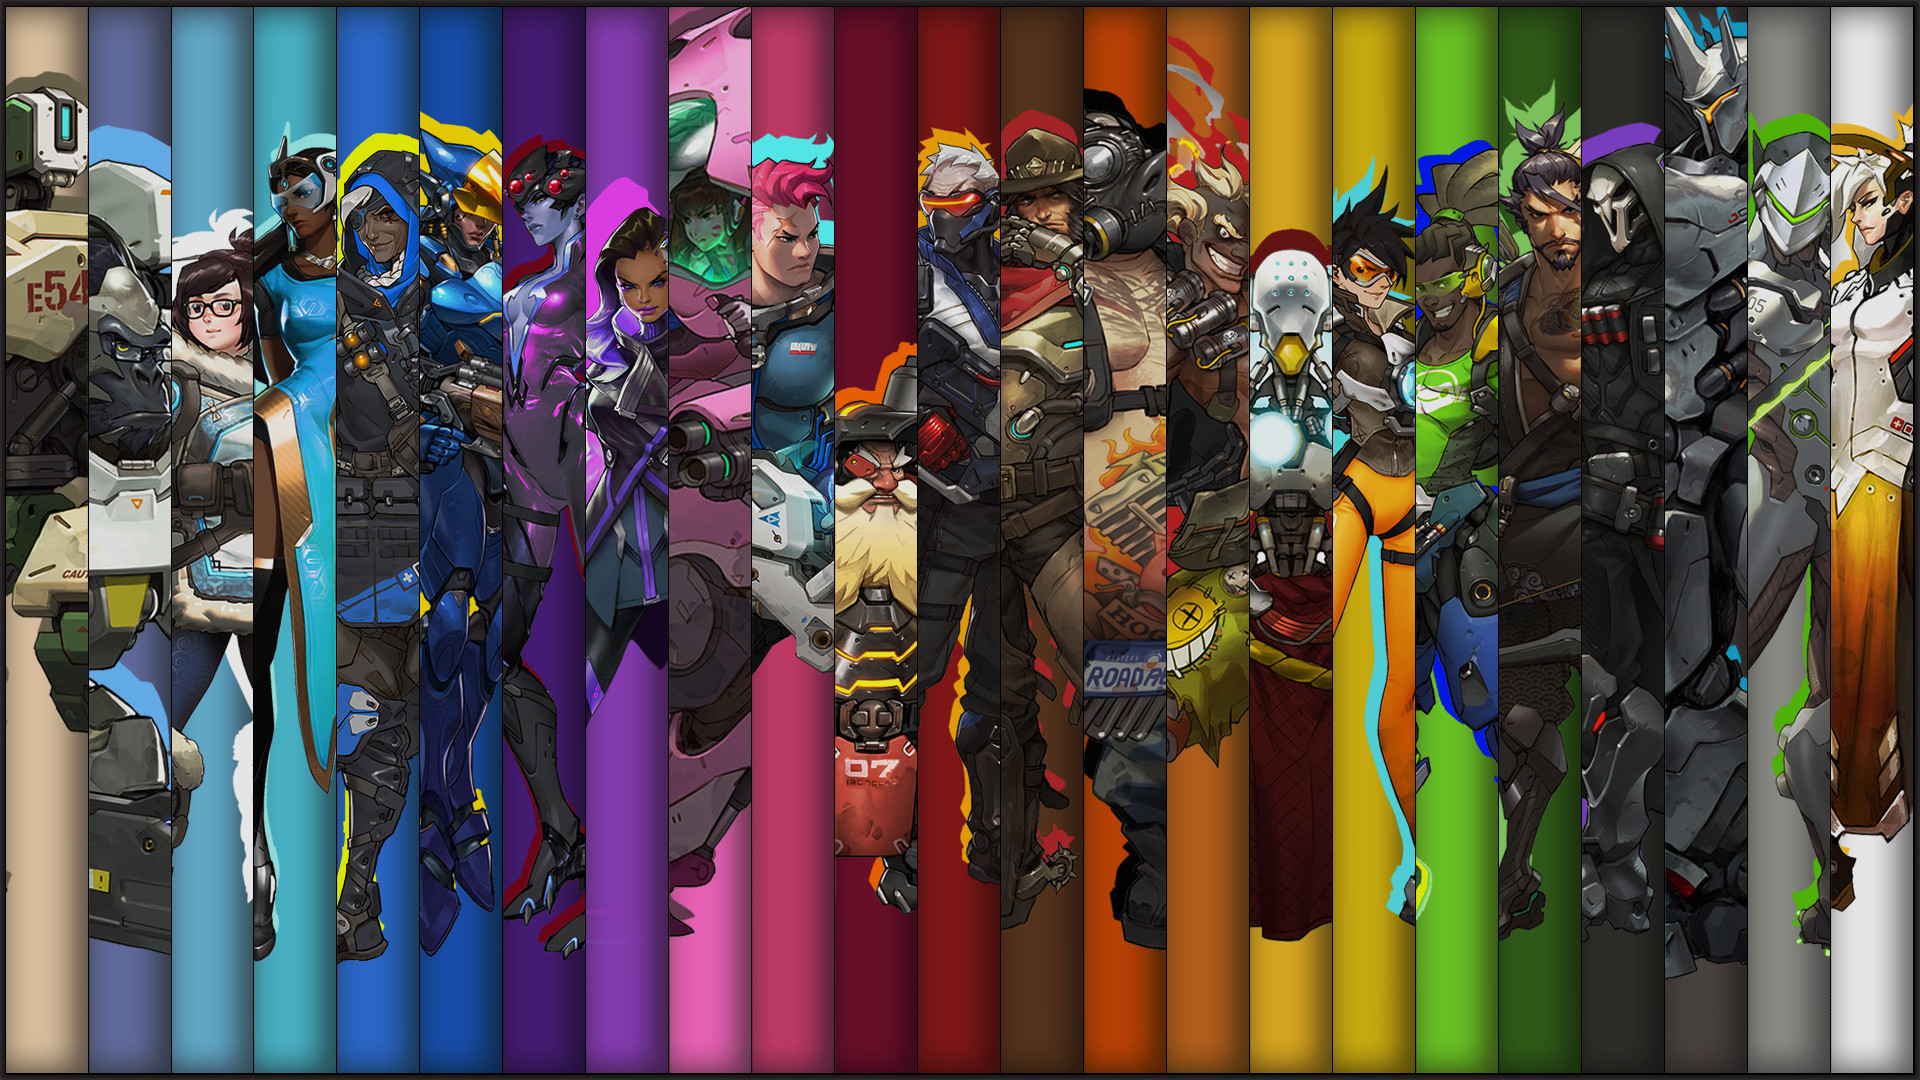 Overwatch 1920x1080 Wallpaper 86 Images